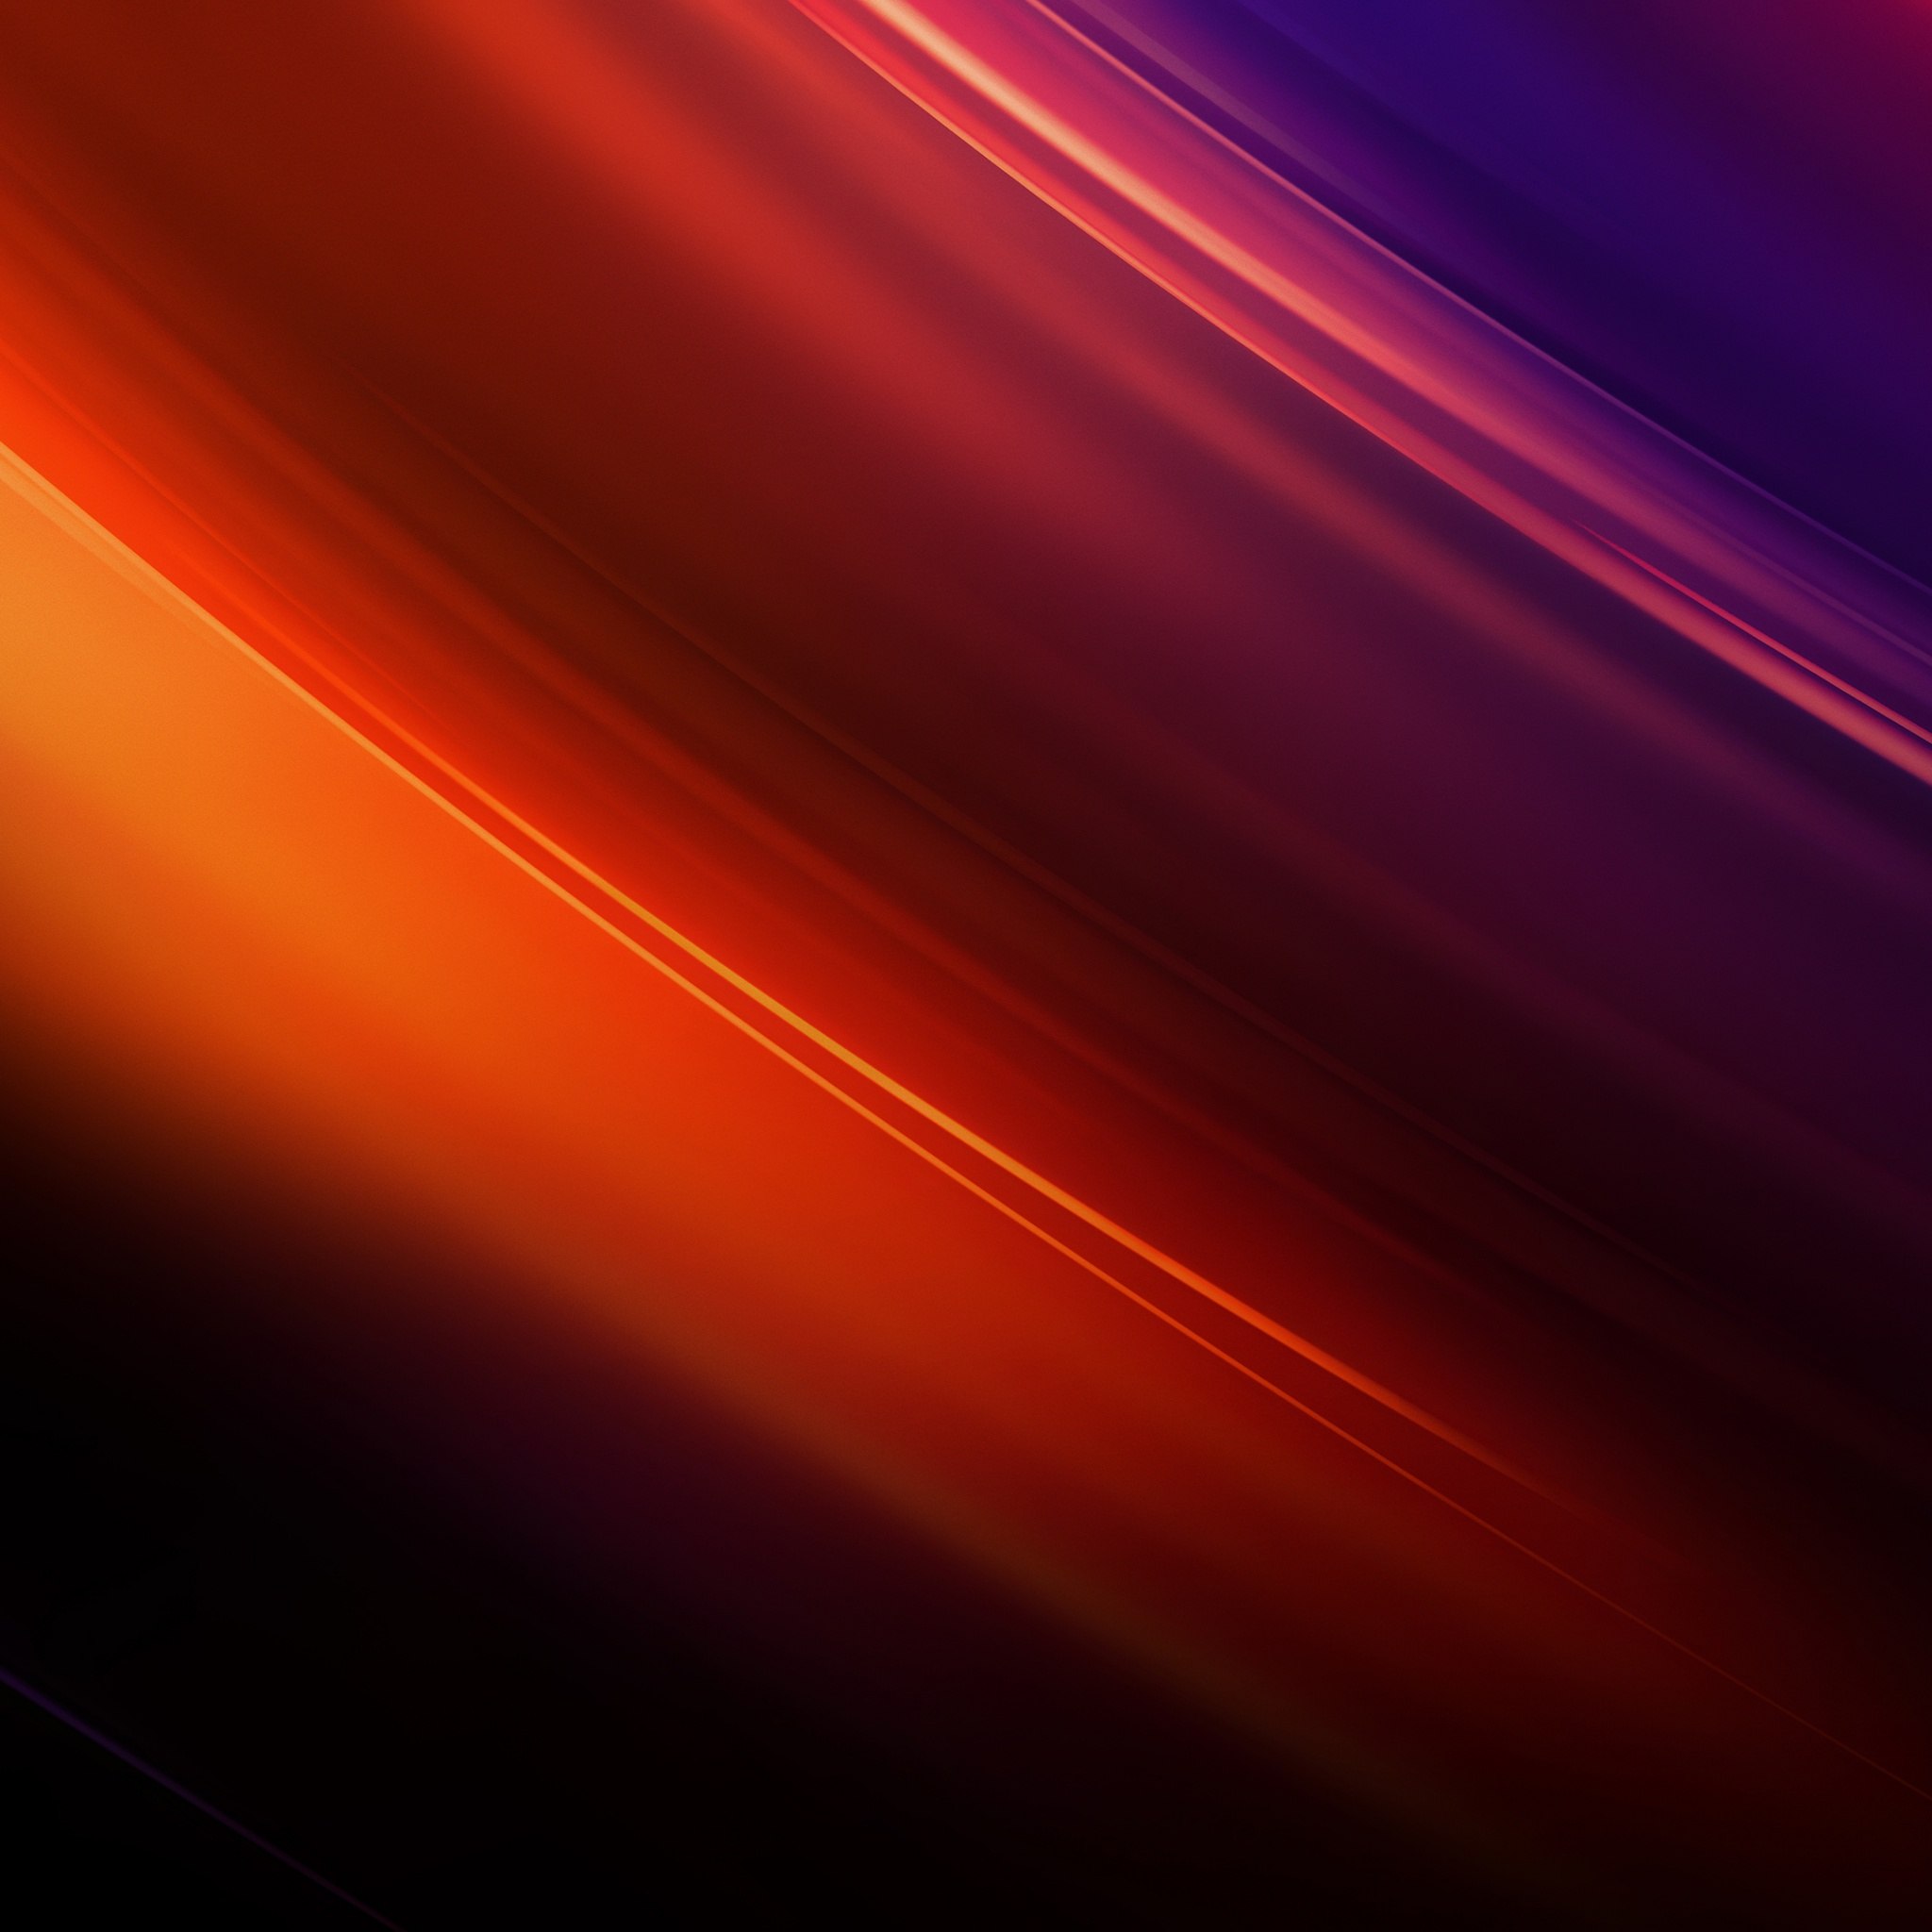 OnePlus 8 Pro 4K Wallpaper, Stock, 2020, Abstract, #512